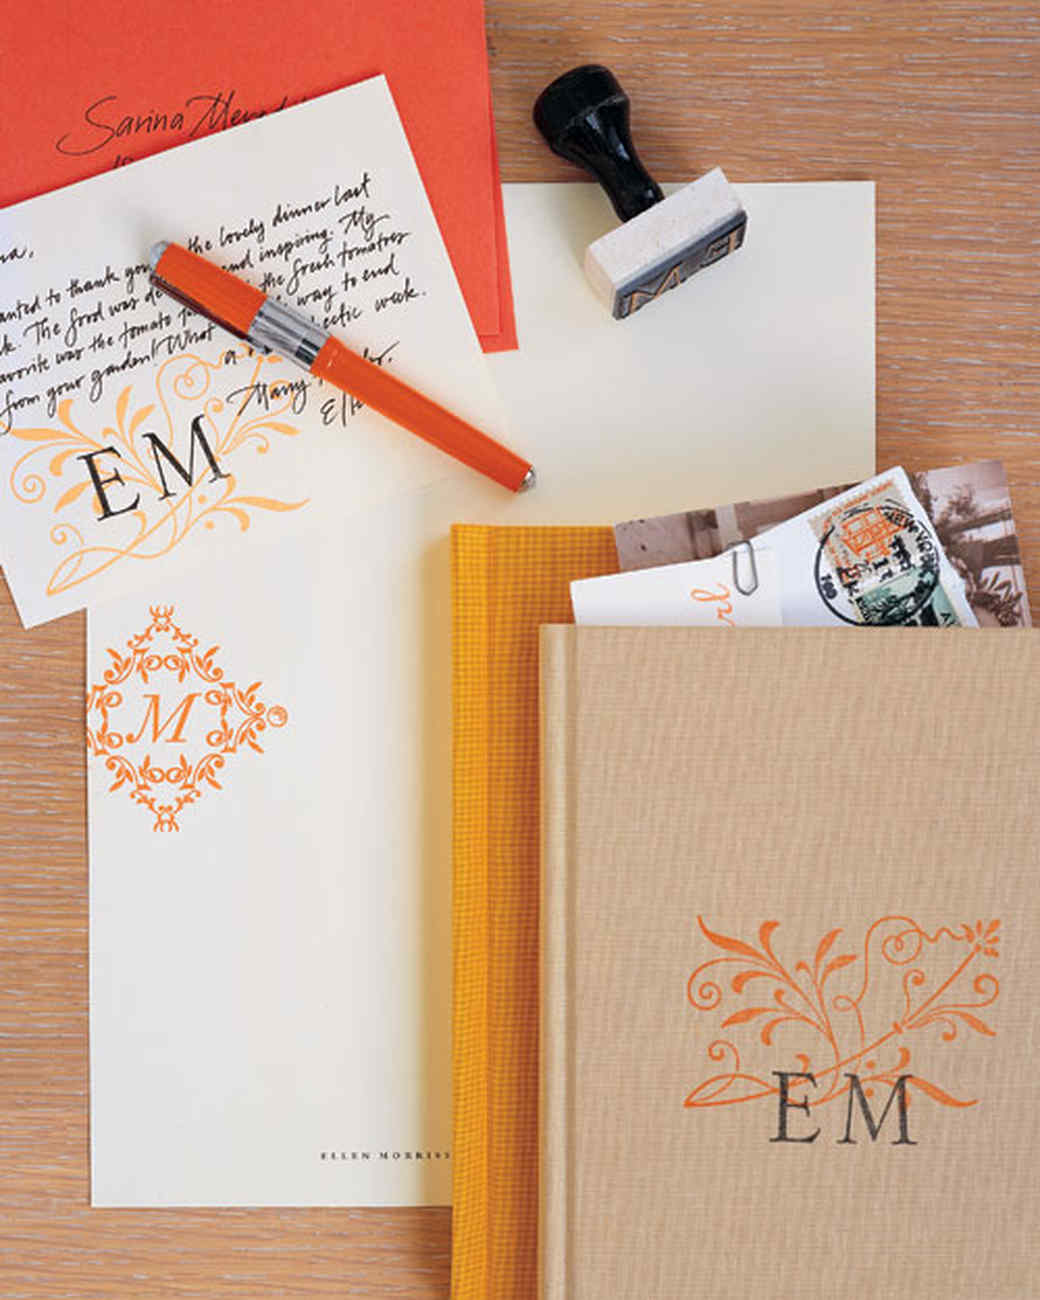 Stamped Stationery and Book